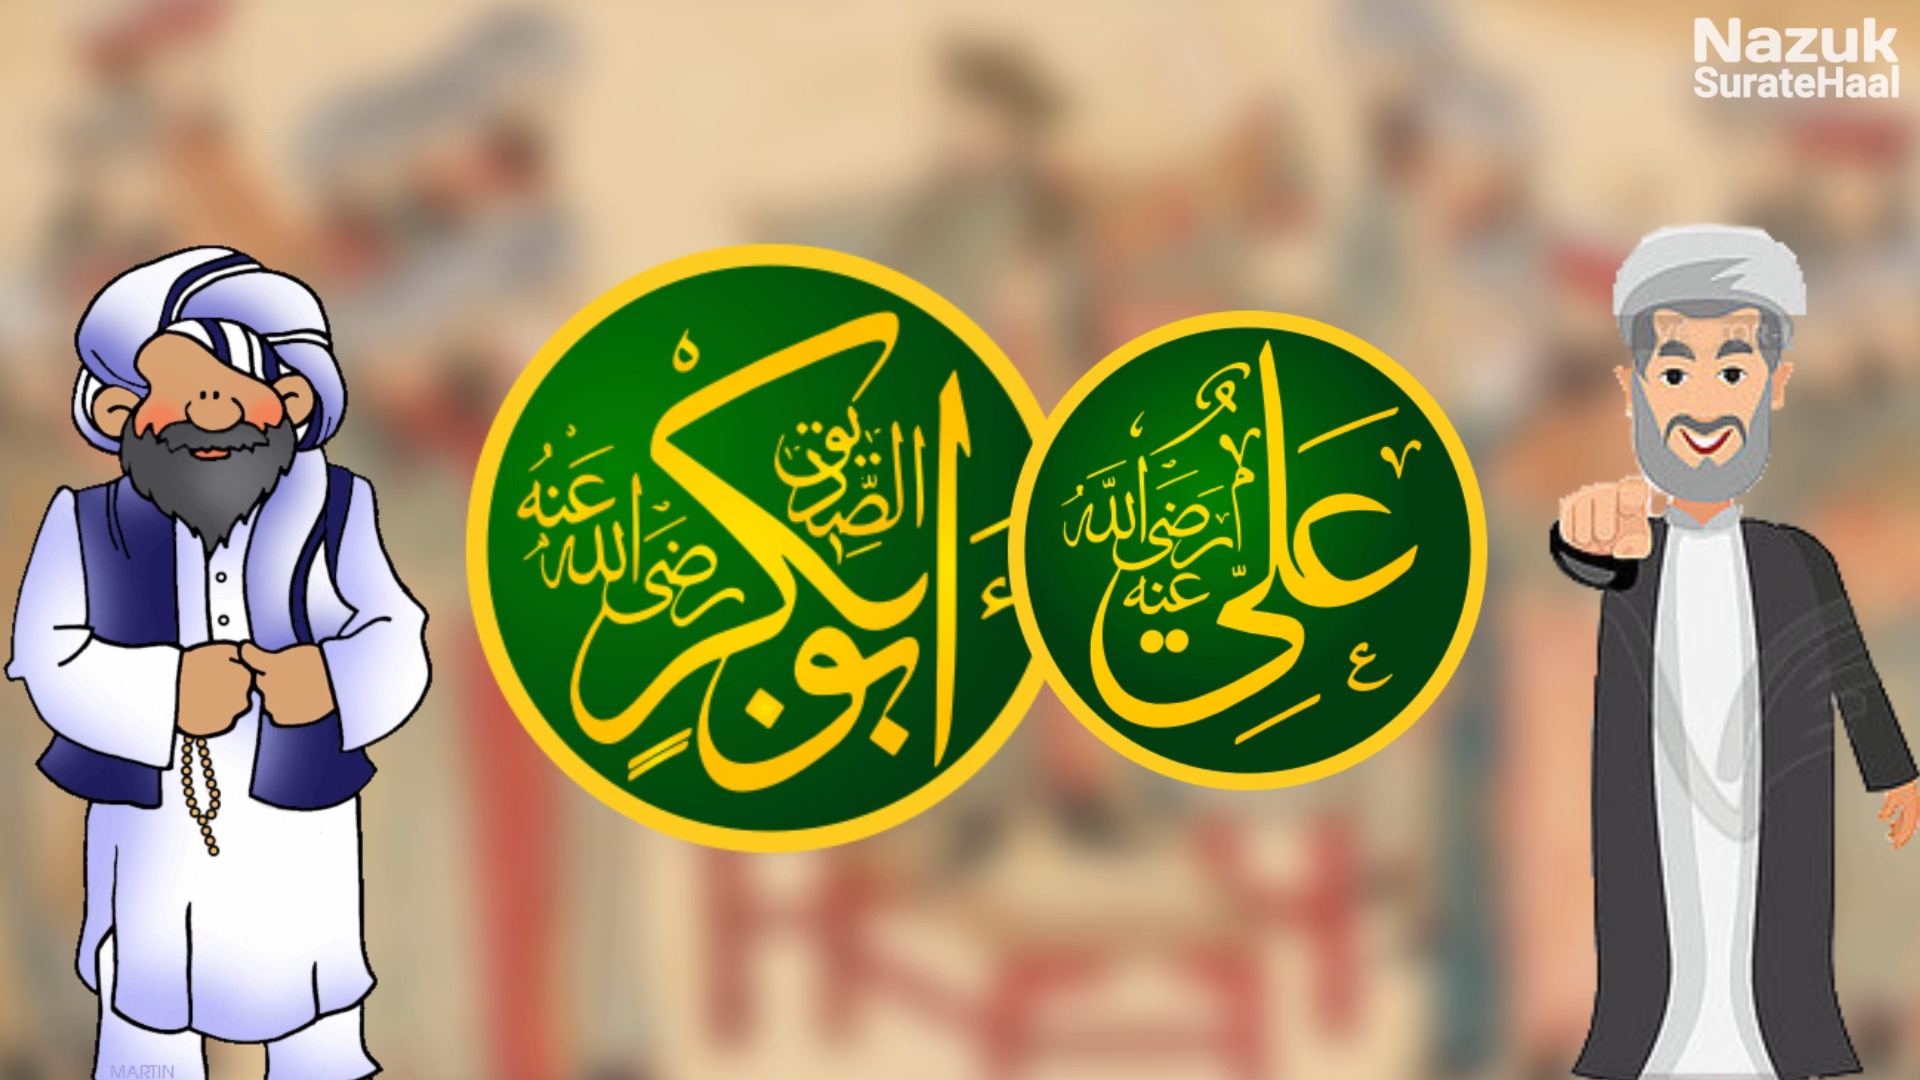 Sunni believed Muhammad's successor should be AbuBakr, and the Shias believed that his successor should be Ali